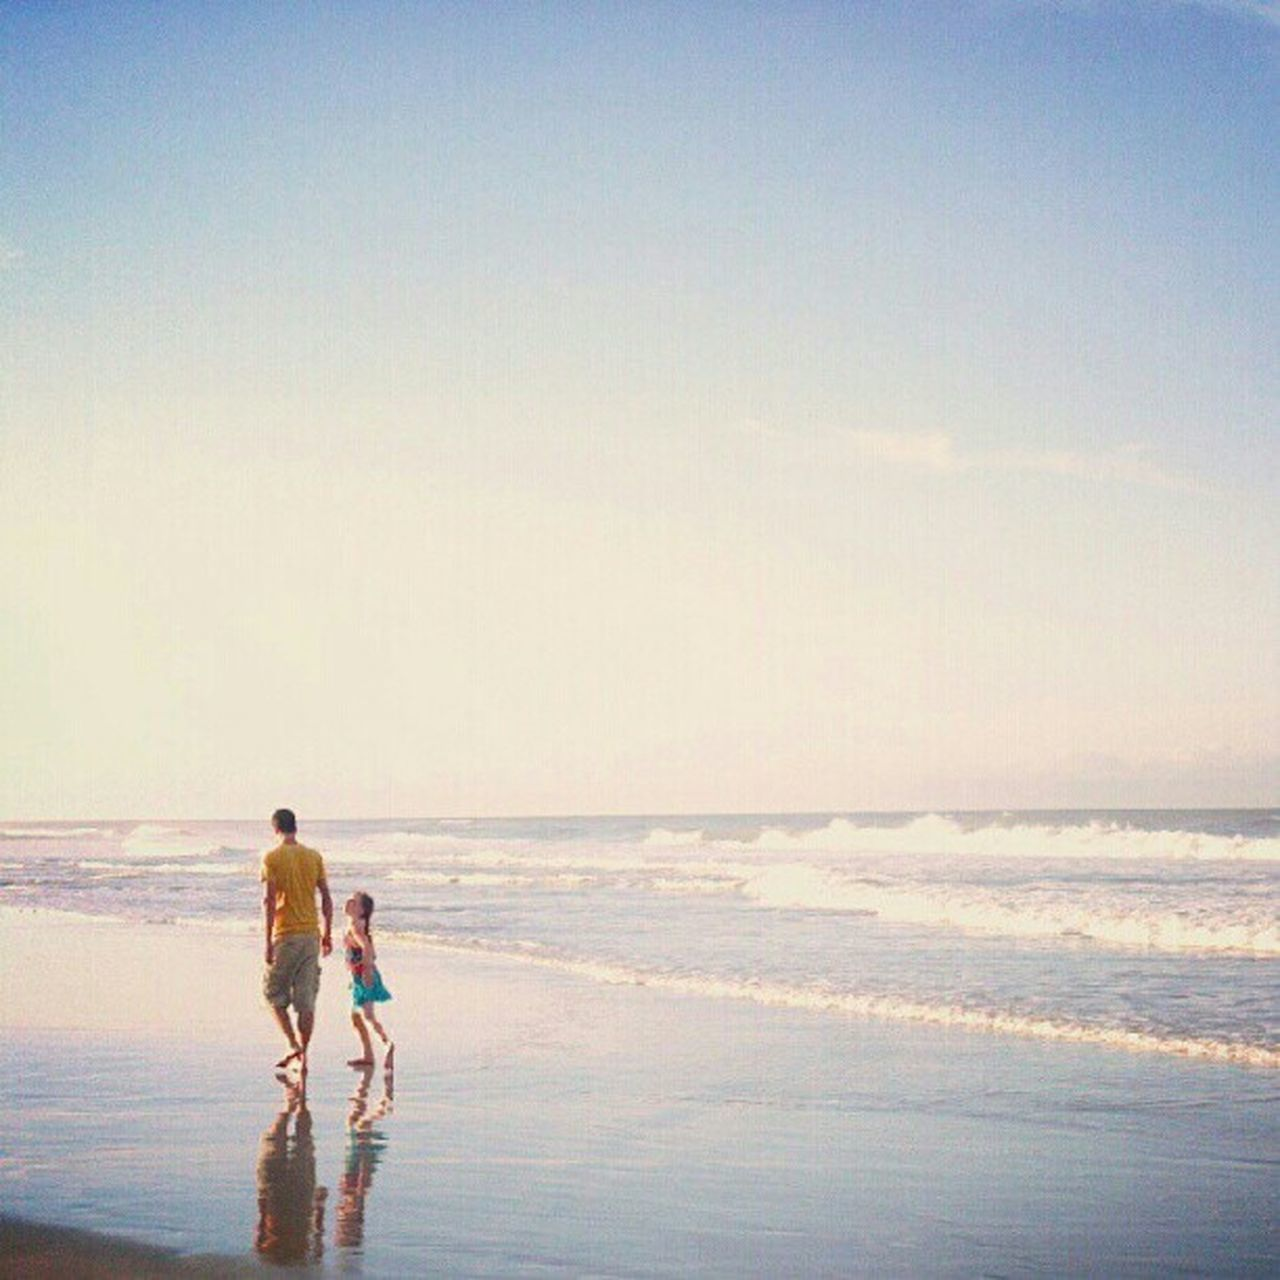 sea, beach, togetherness, horizon over water, vacations, bonding, walking, sky, love, leisure activity, full length, nature, childhood, two people, child, boys, wave, outdoors, sand, girls, scenics, standing, day, females, men, clear sky, adult, water, women, beauty in nature, people, young adult